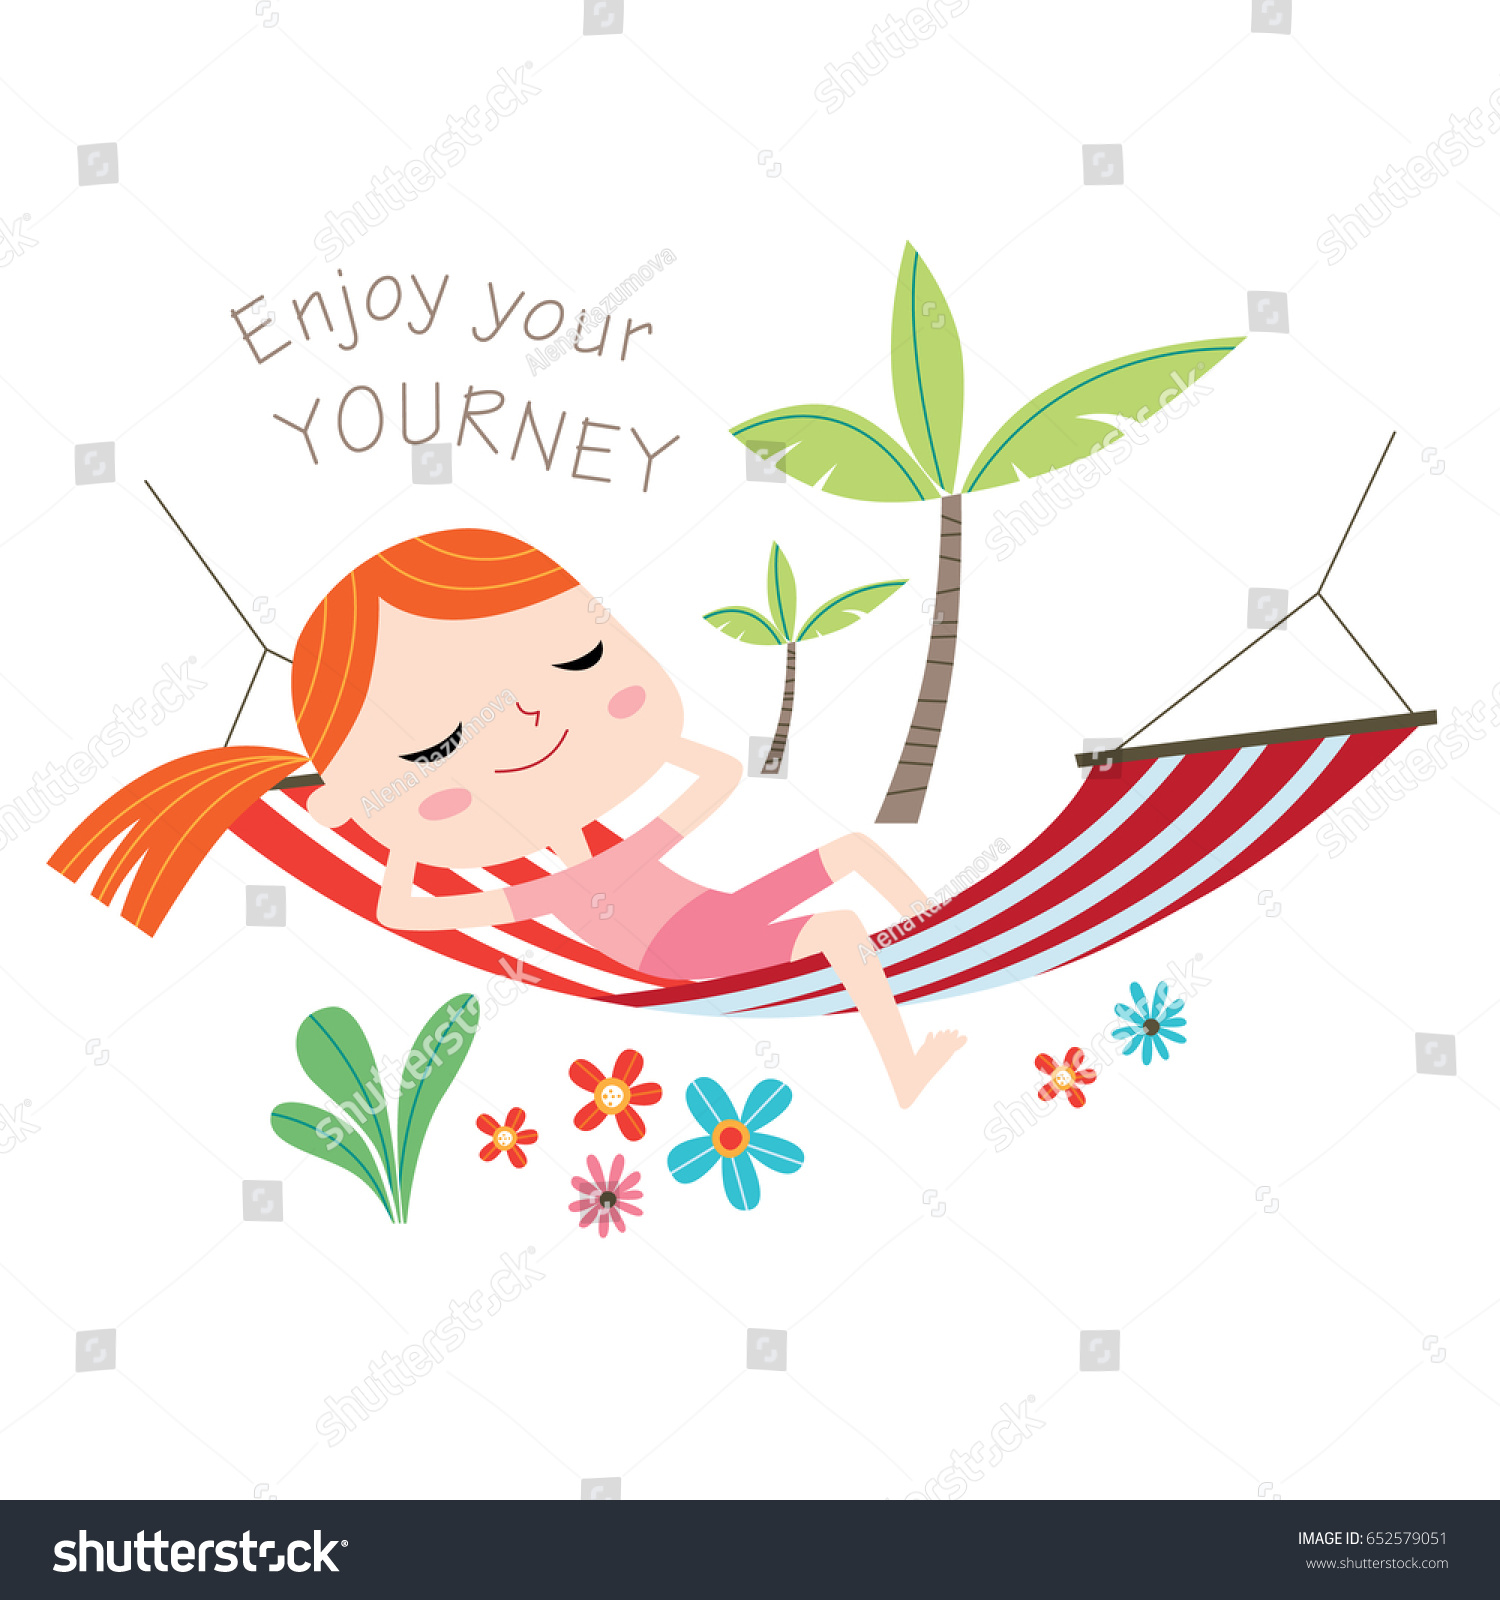 Enjoy Your Journey Greeting Card Vector Stock Vector 652579051